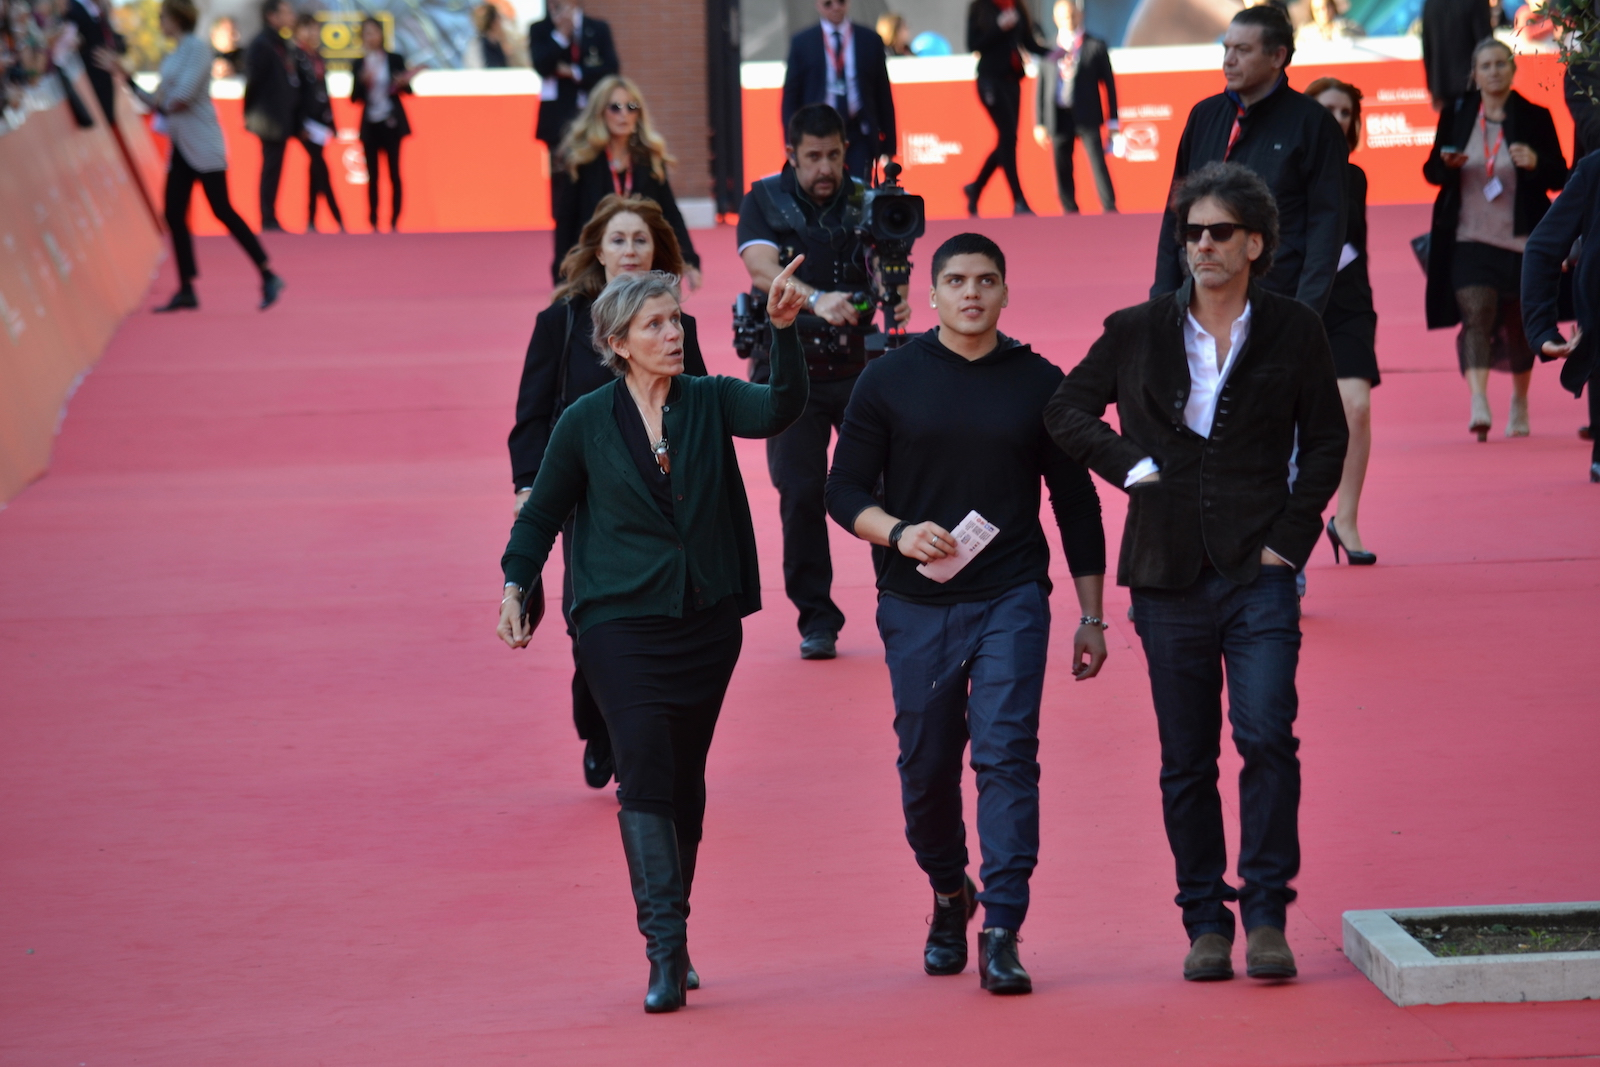 Roma 2015: Frences McDornand e Joel Coen in arrivo sul red carpet